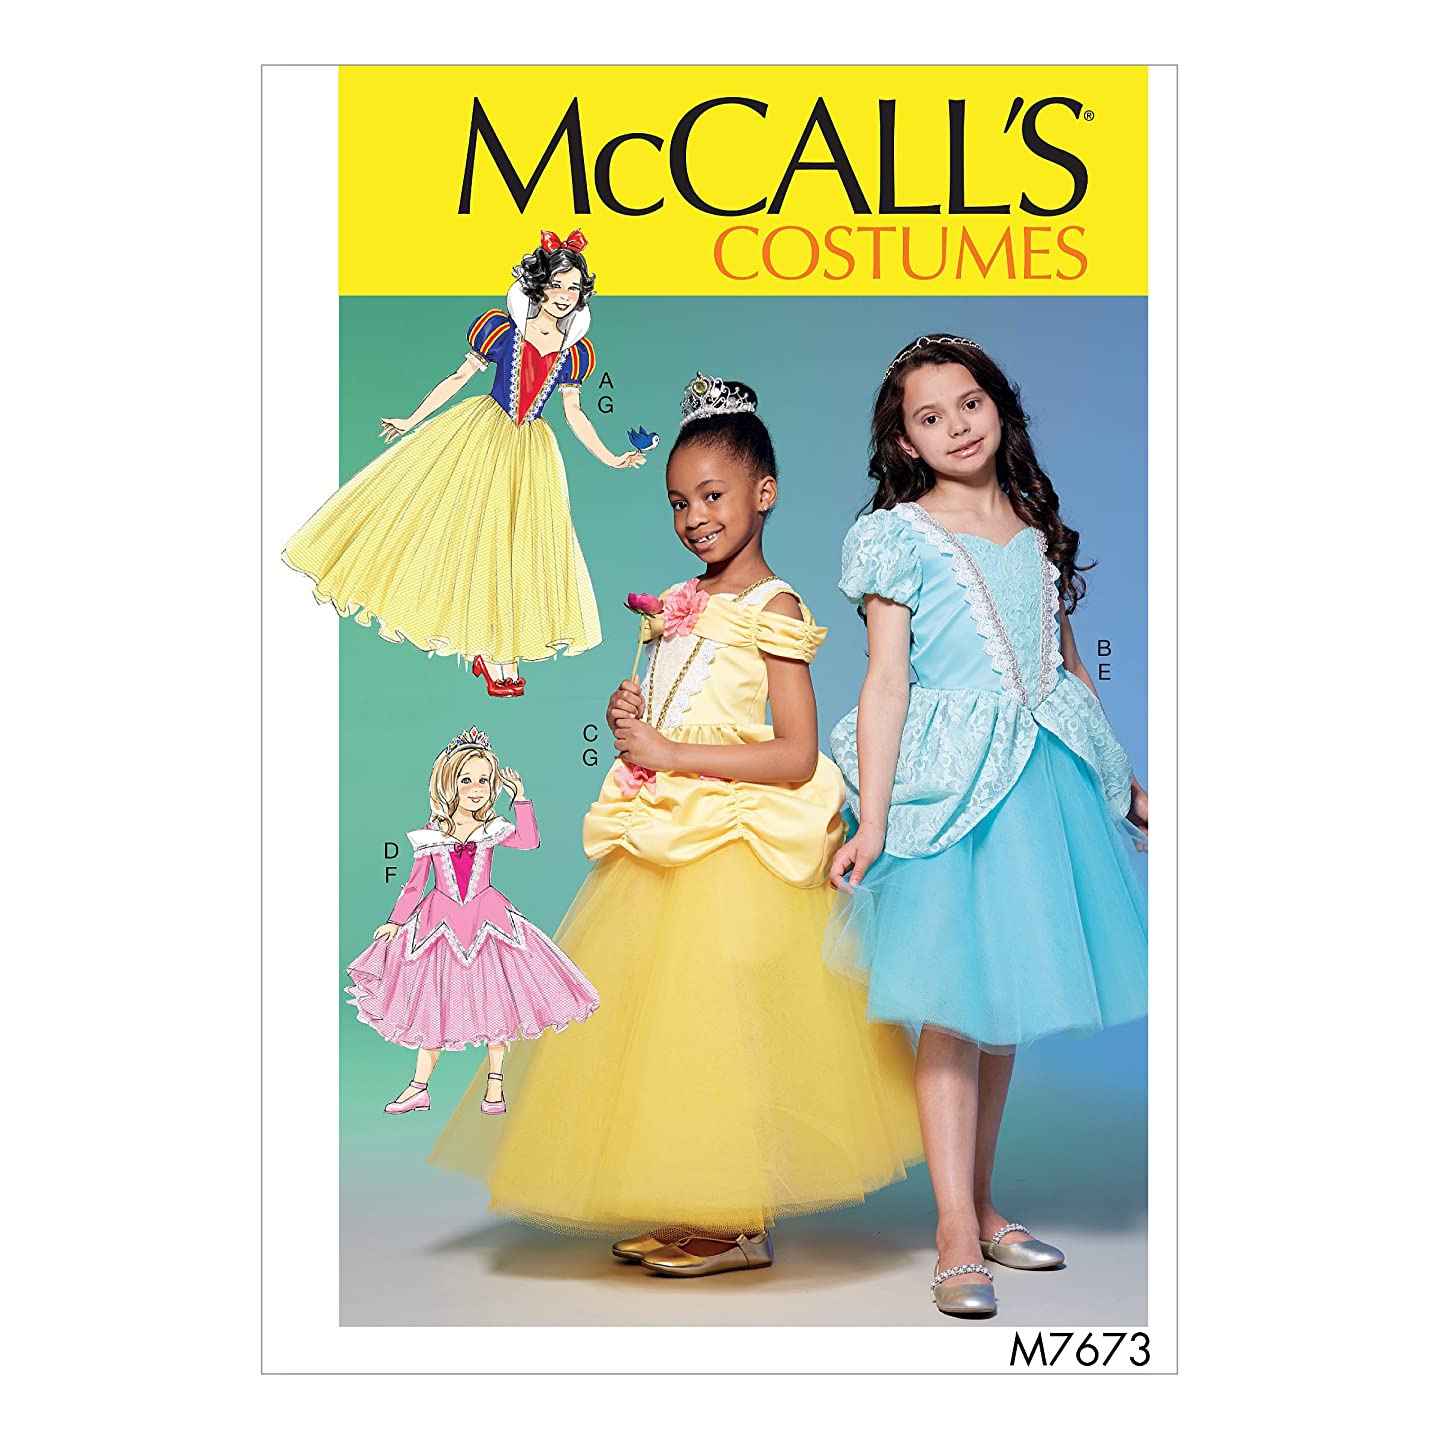 McCall's Patterns M7673CCE Fairytale Princess Dress Costume Sewing Pattern for Girls, Sizes 3-6